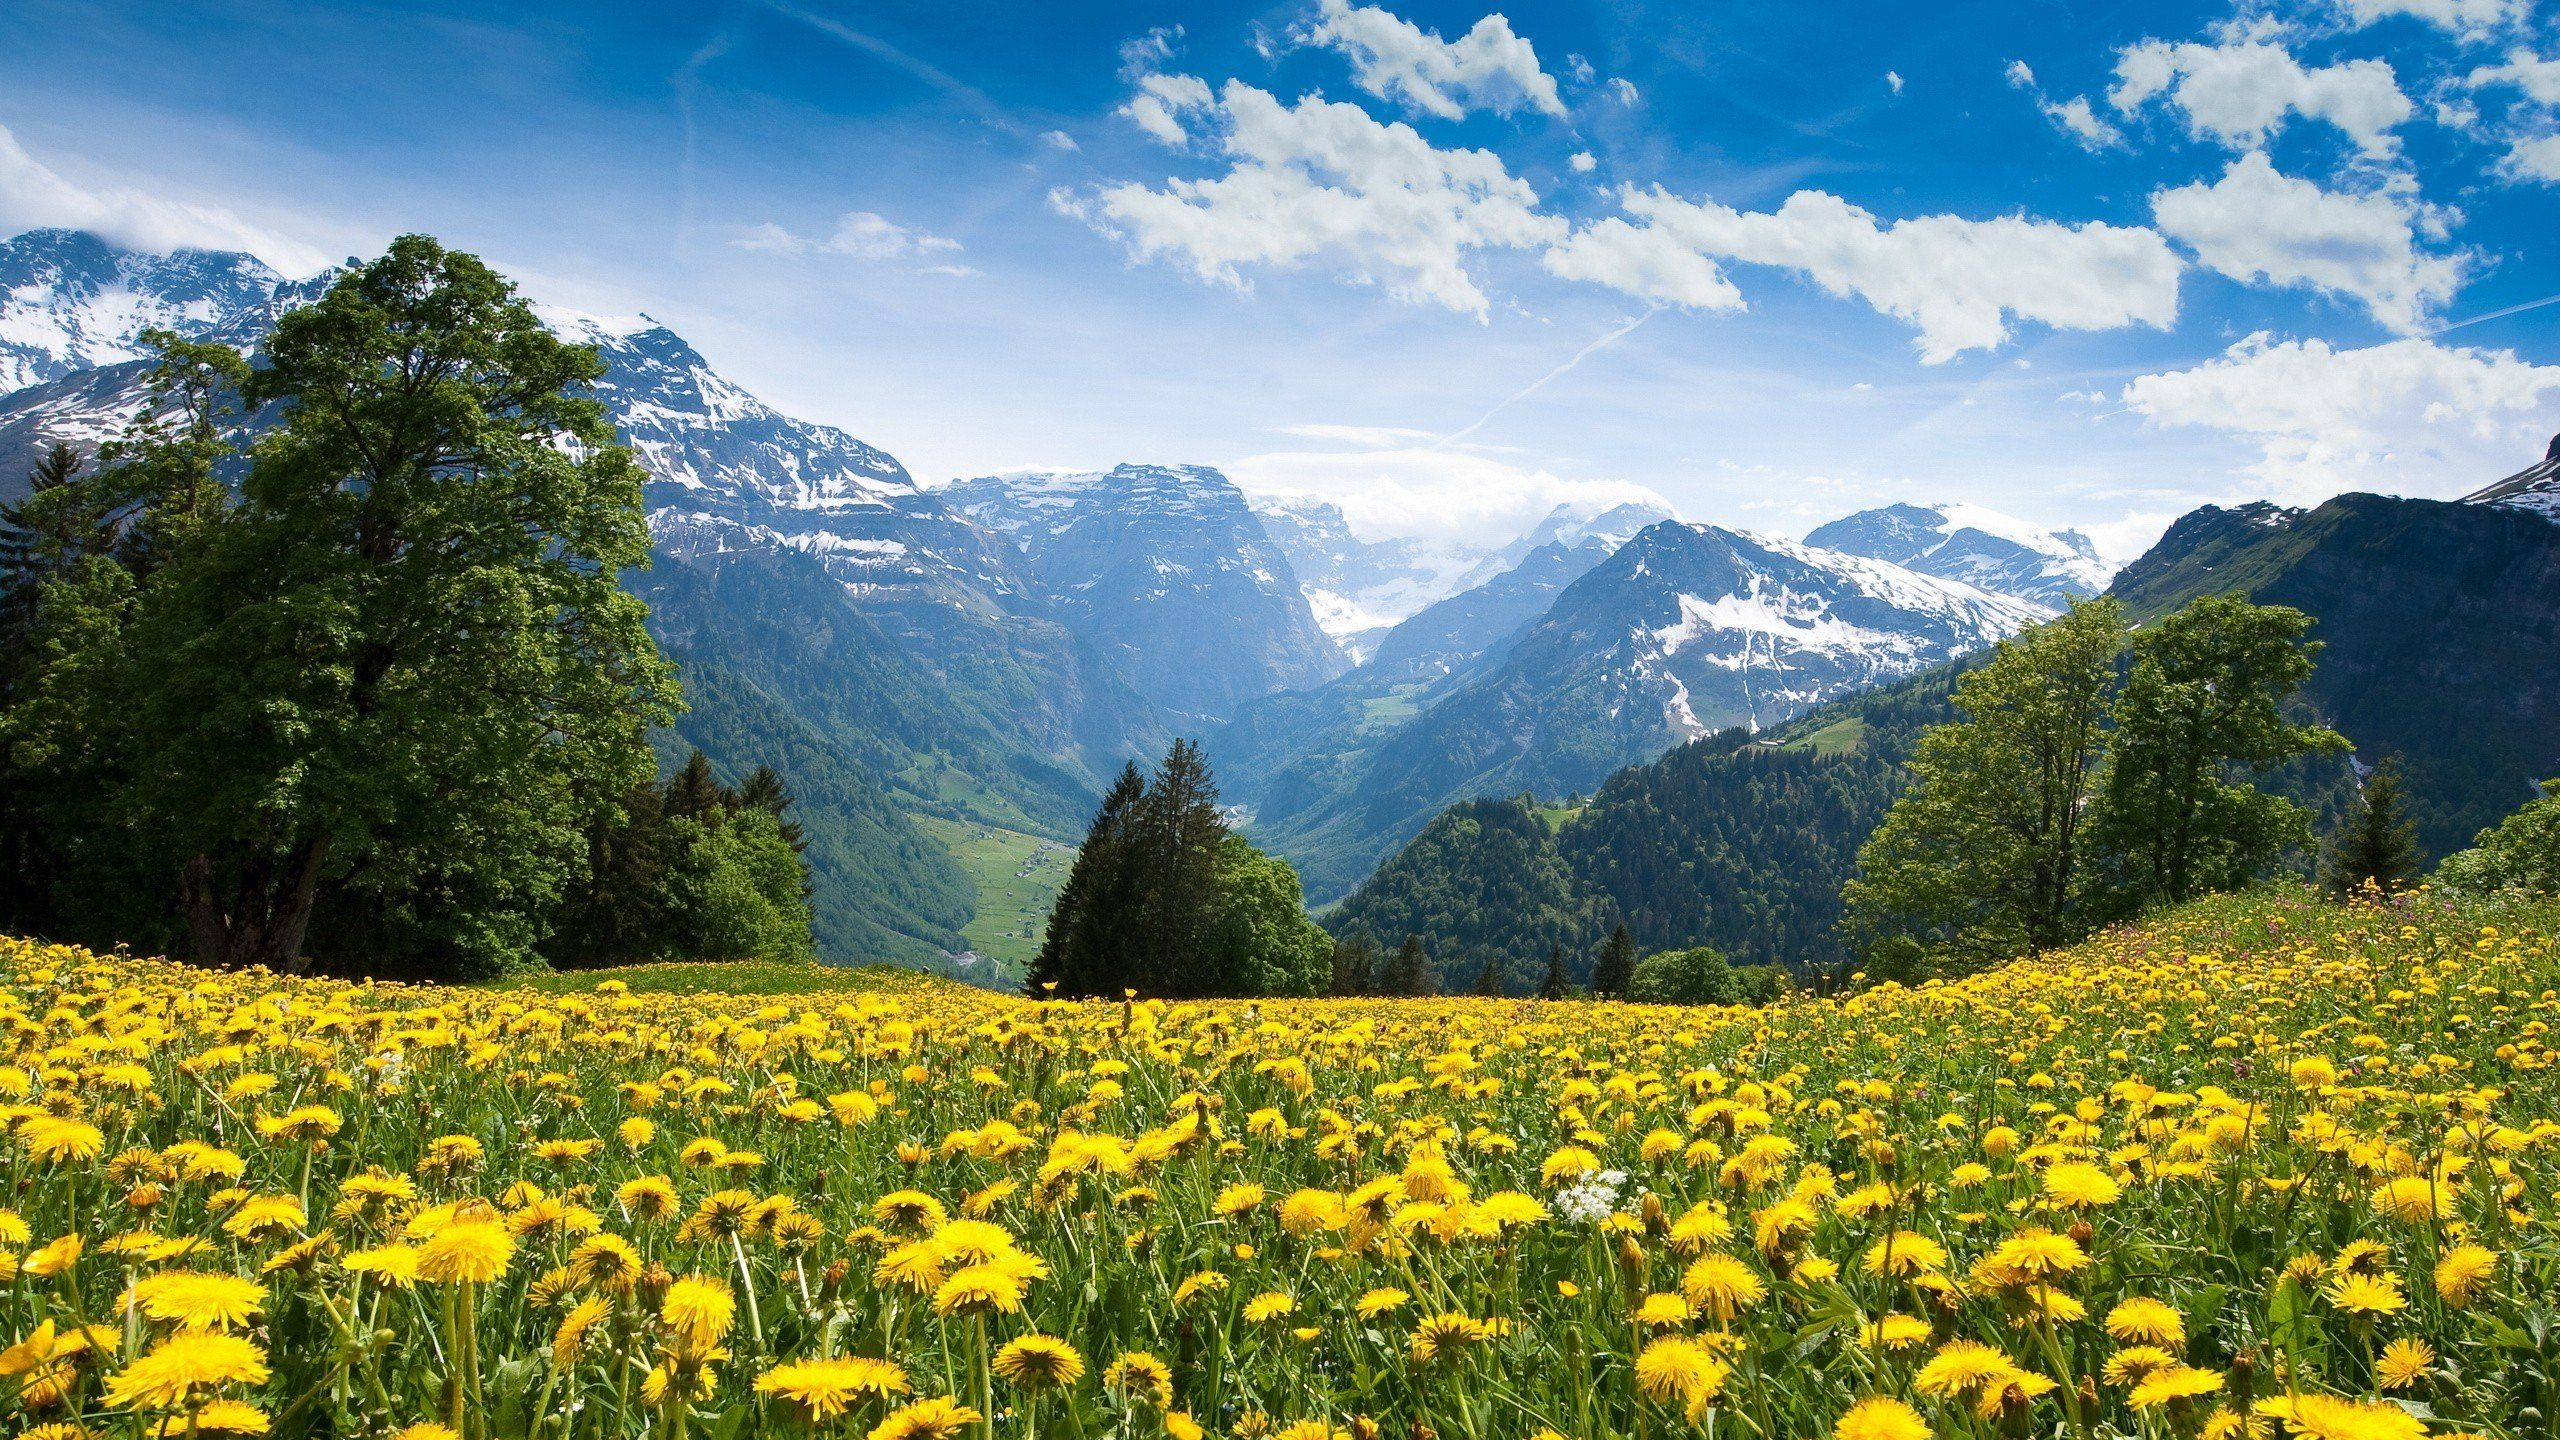 Mountains Landscape Nature Mountain Spring Meadow Flowers Wallpaper 2560x1440 653161 Scenery Wallpaper Mountain Landscape Natural Scenery